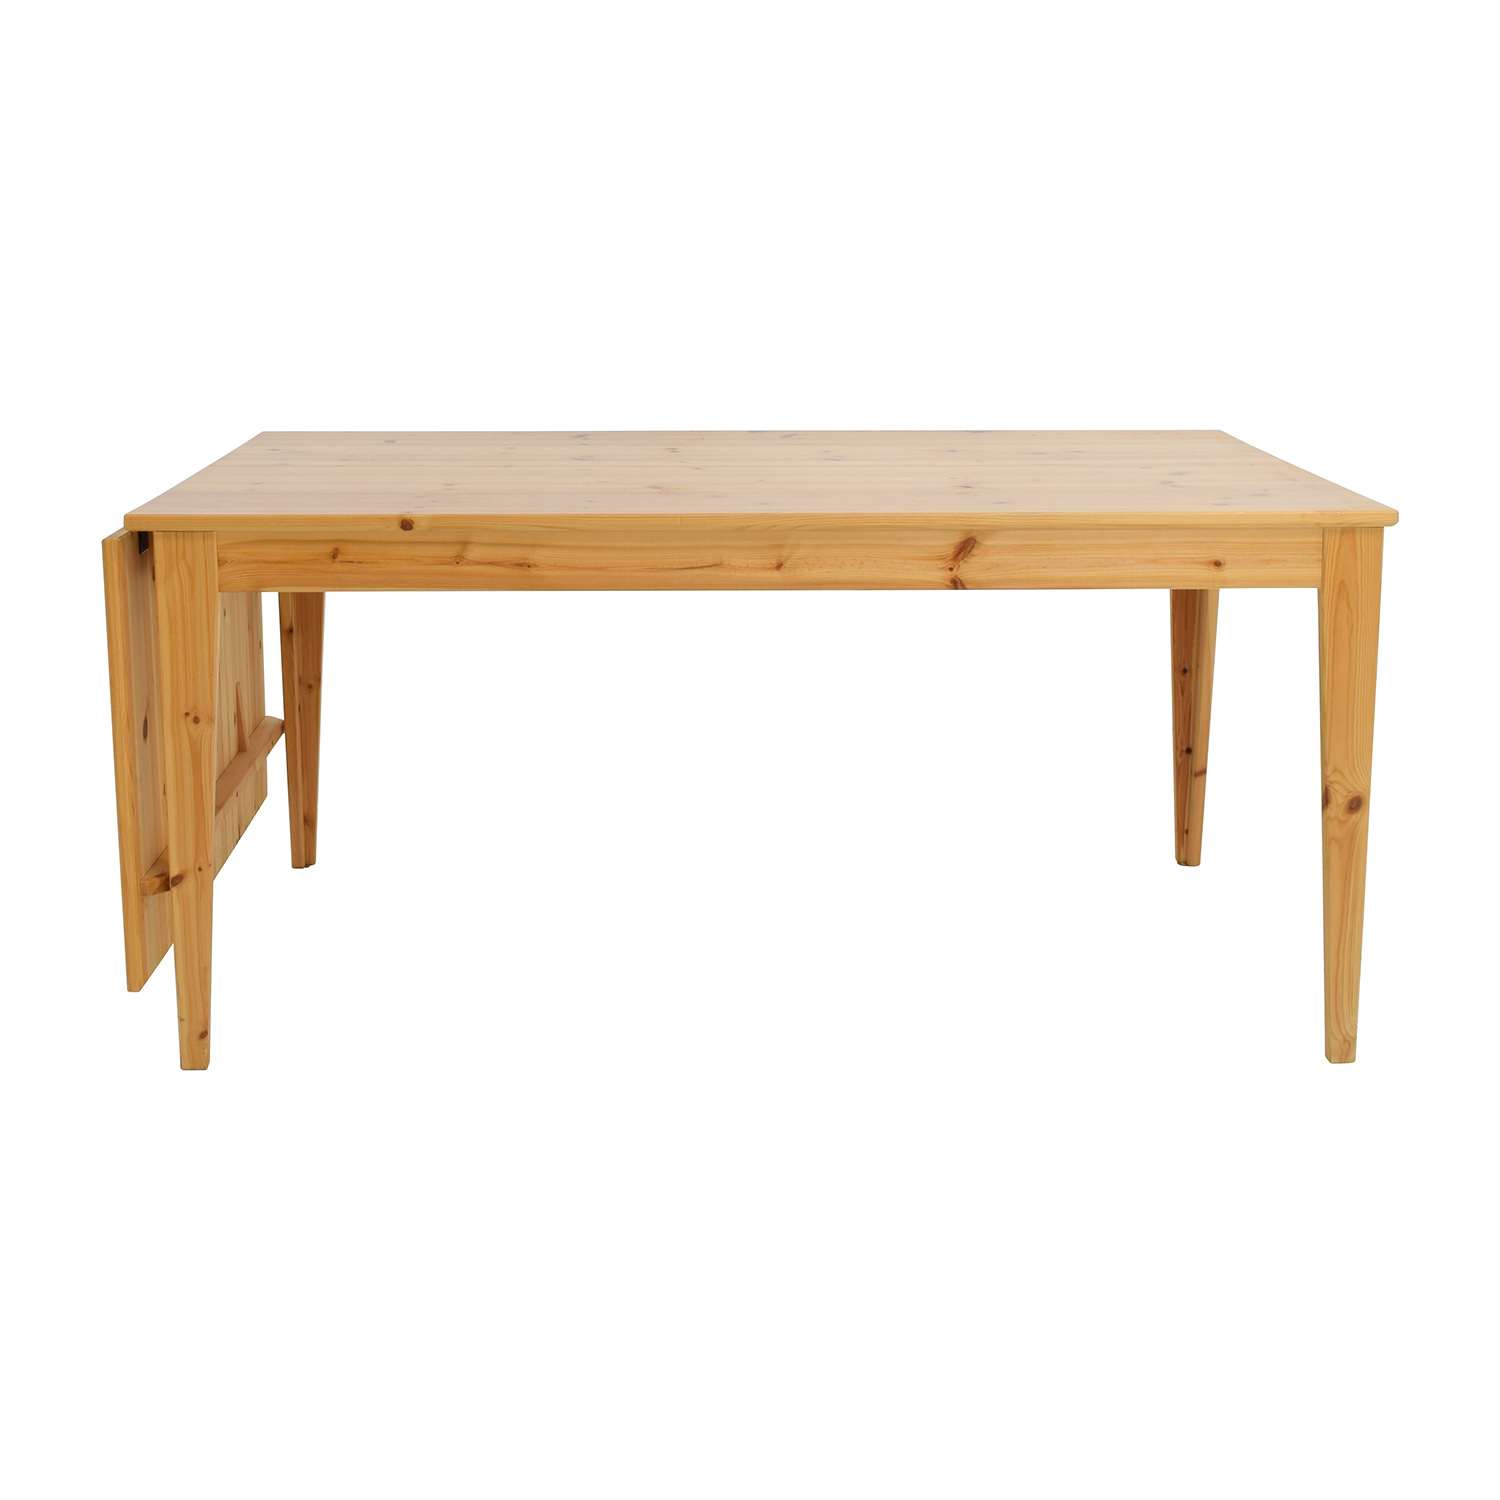 Attirant Shop IKEA Normas Pine Wood Drop Leaf Table IKEA Dinner Tables ...